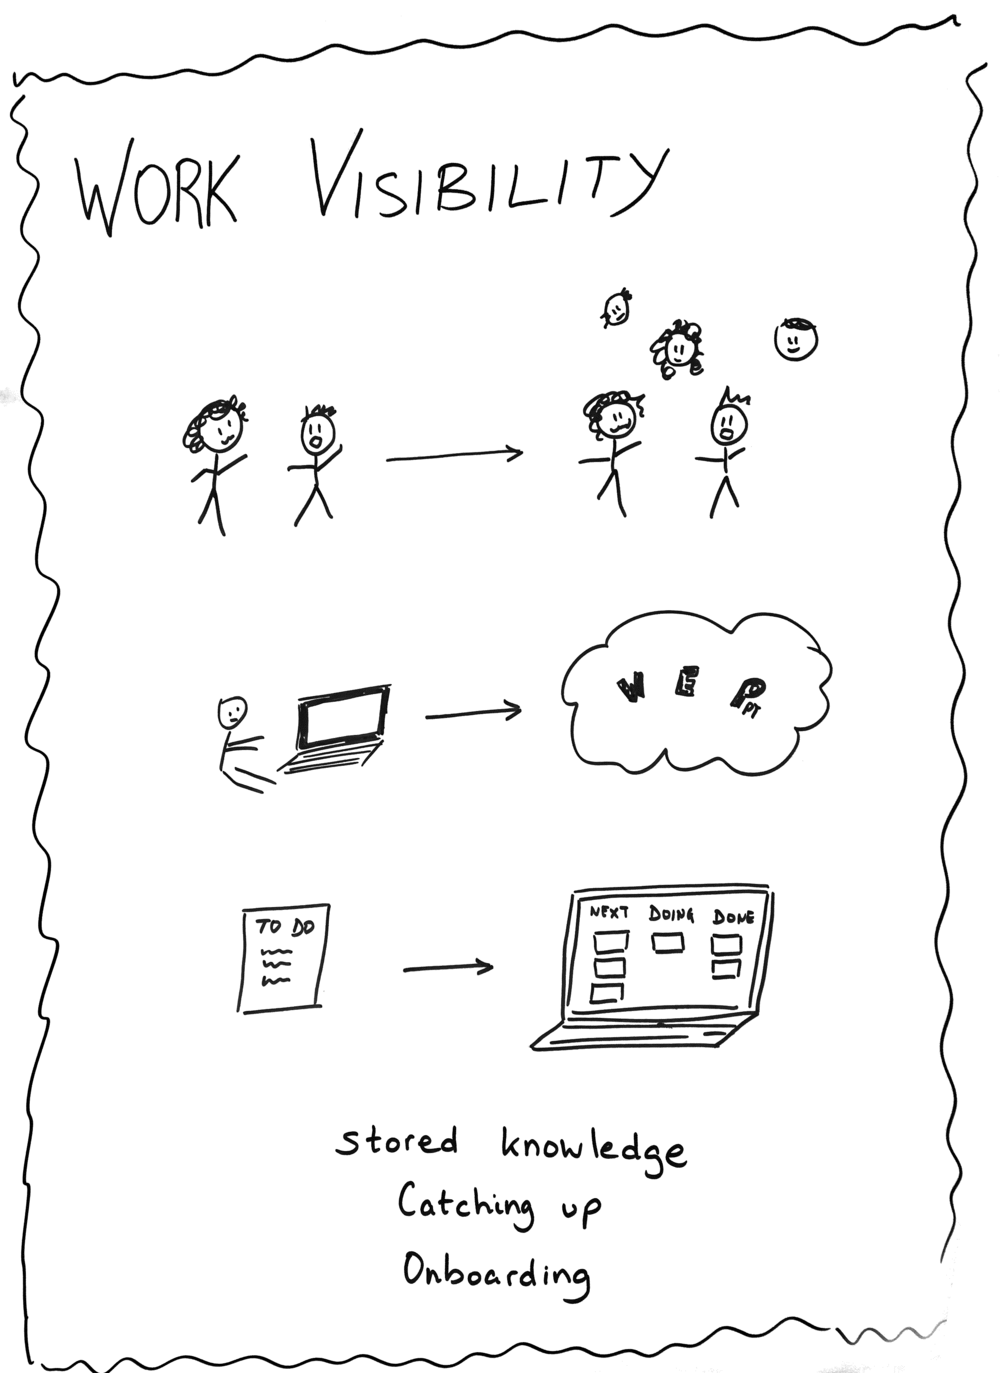 2_Work_visibility.png